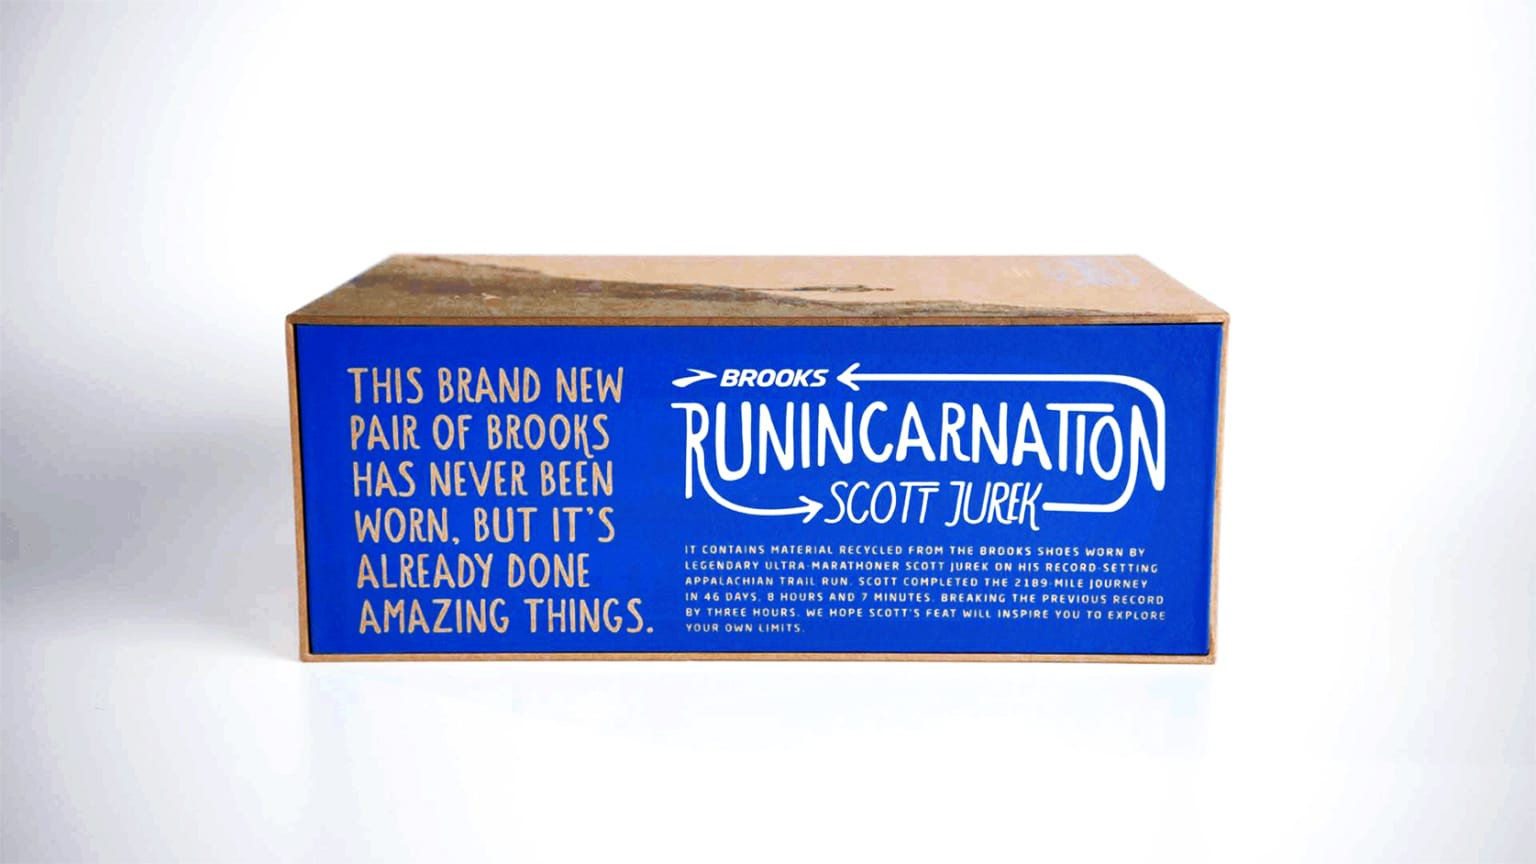 Runincarnation